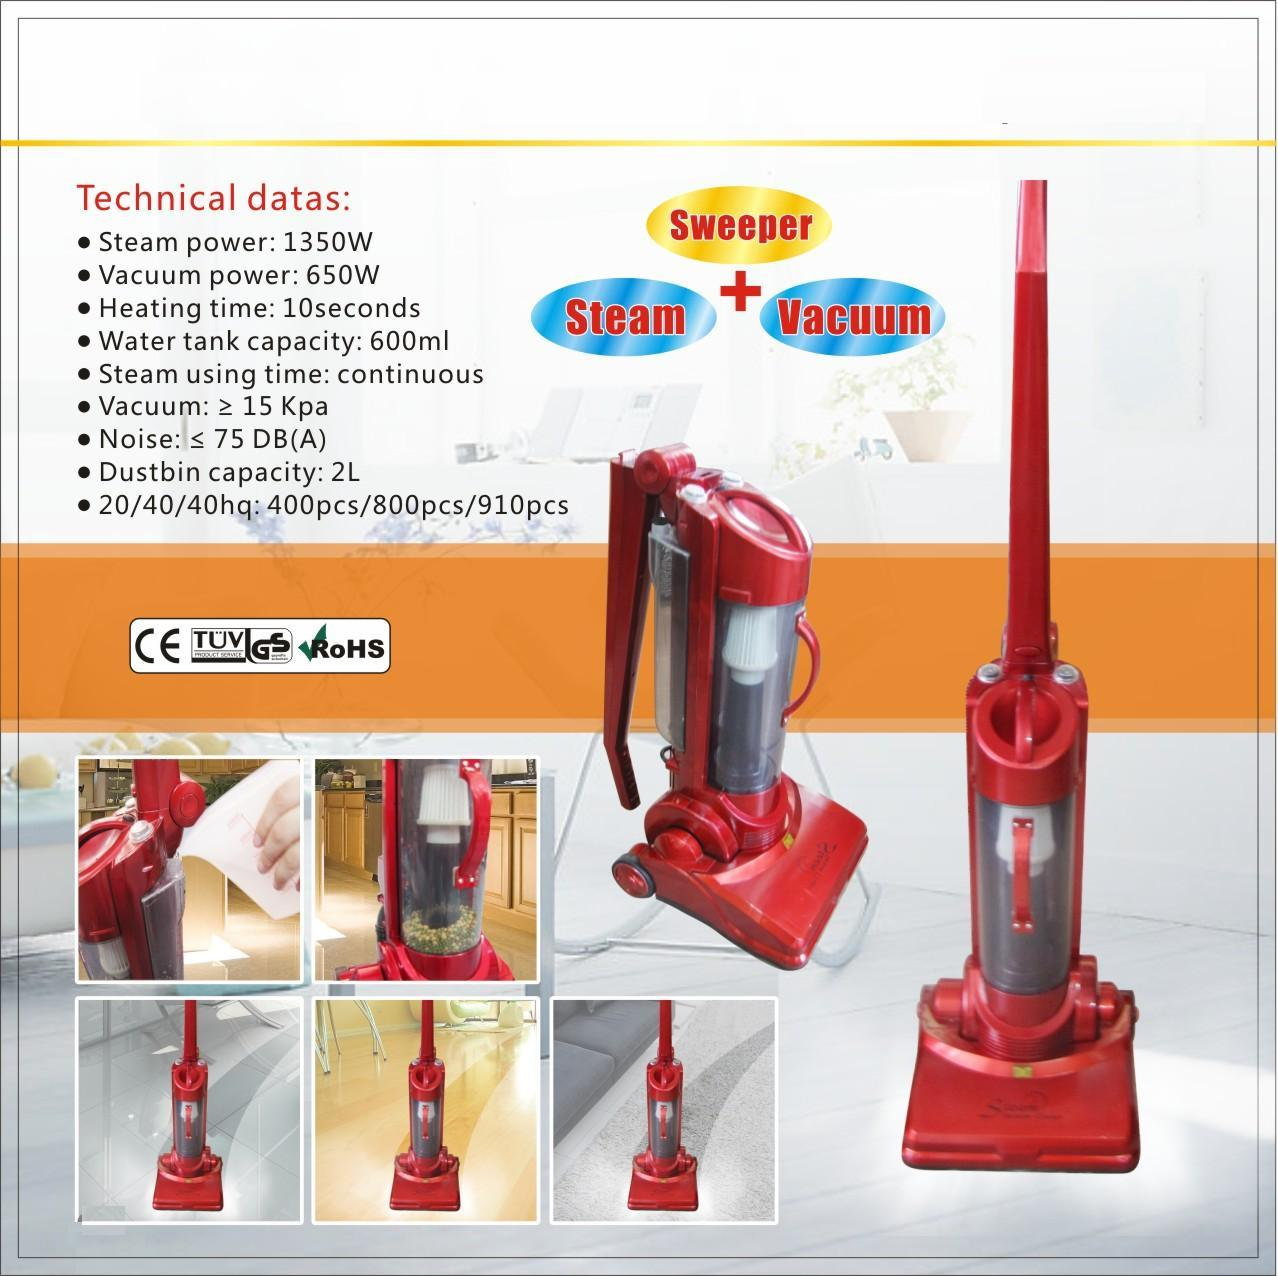 Upright Steam Vacuum Cleaner (USVC0716)